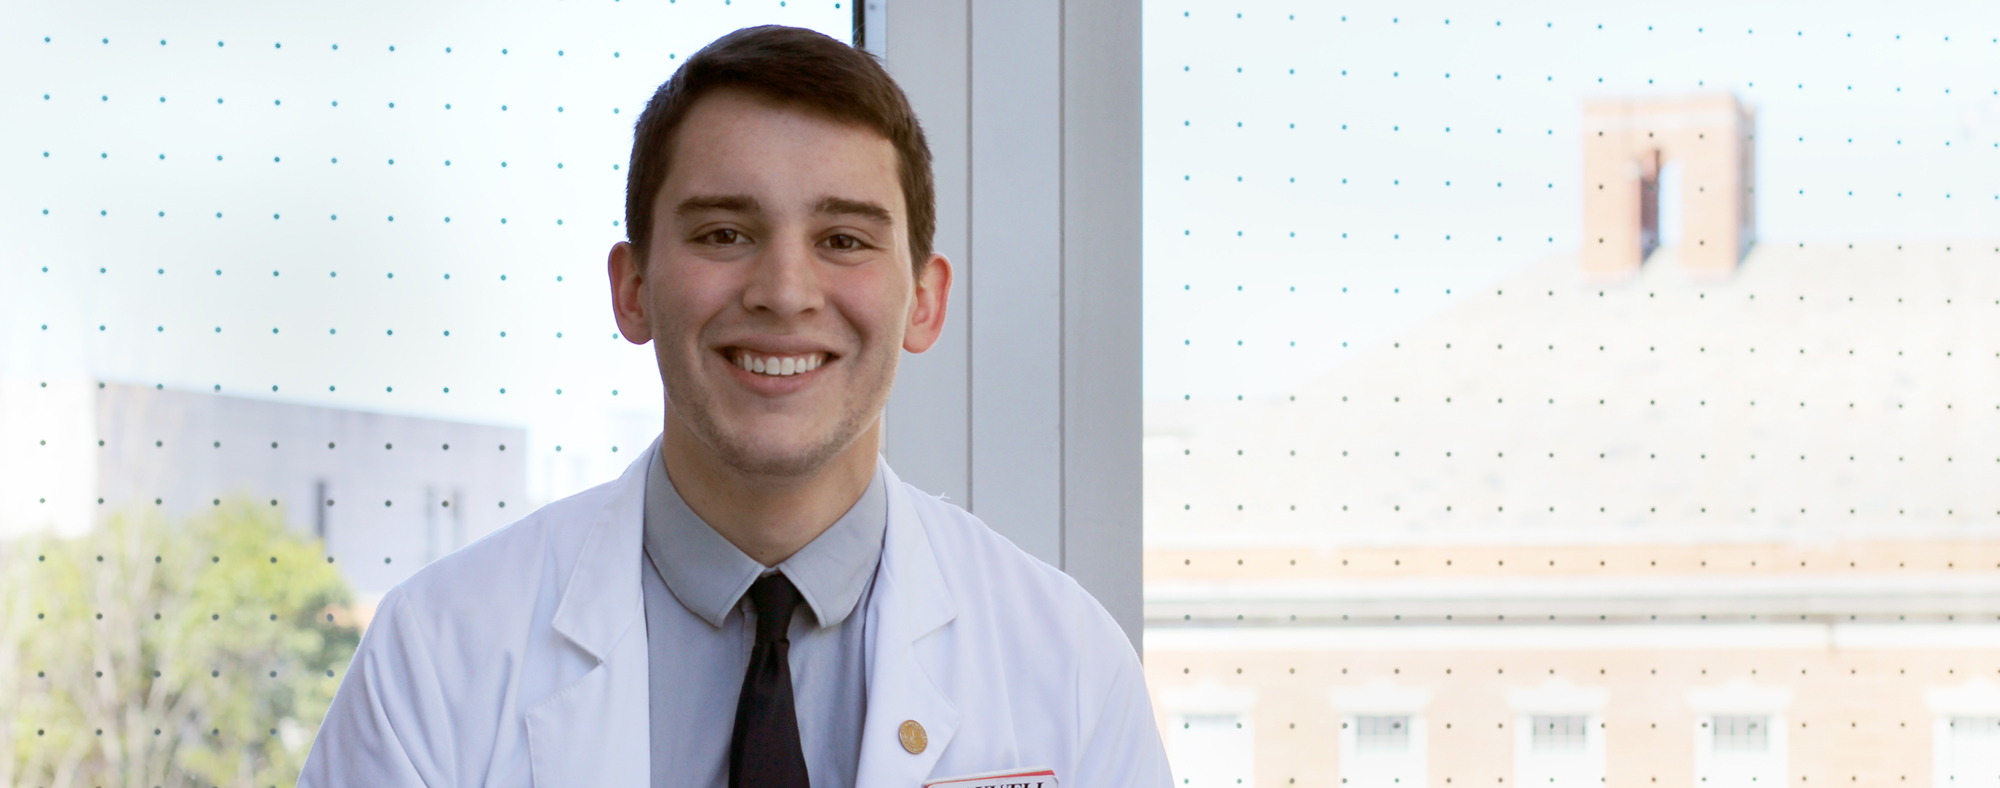 Duke MD-MEng student Joshua D'Arcy in a white coat